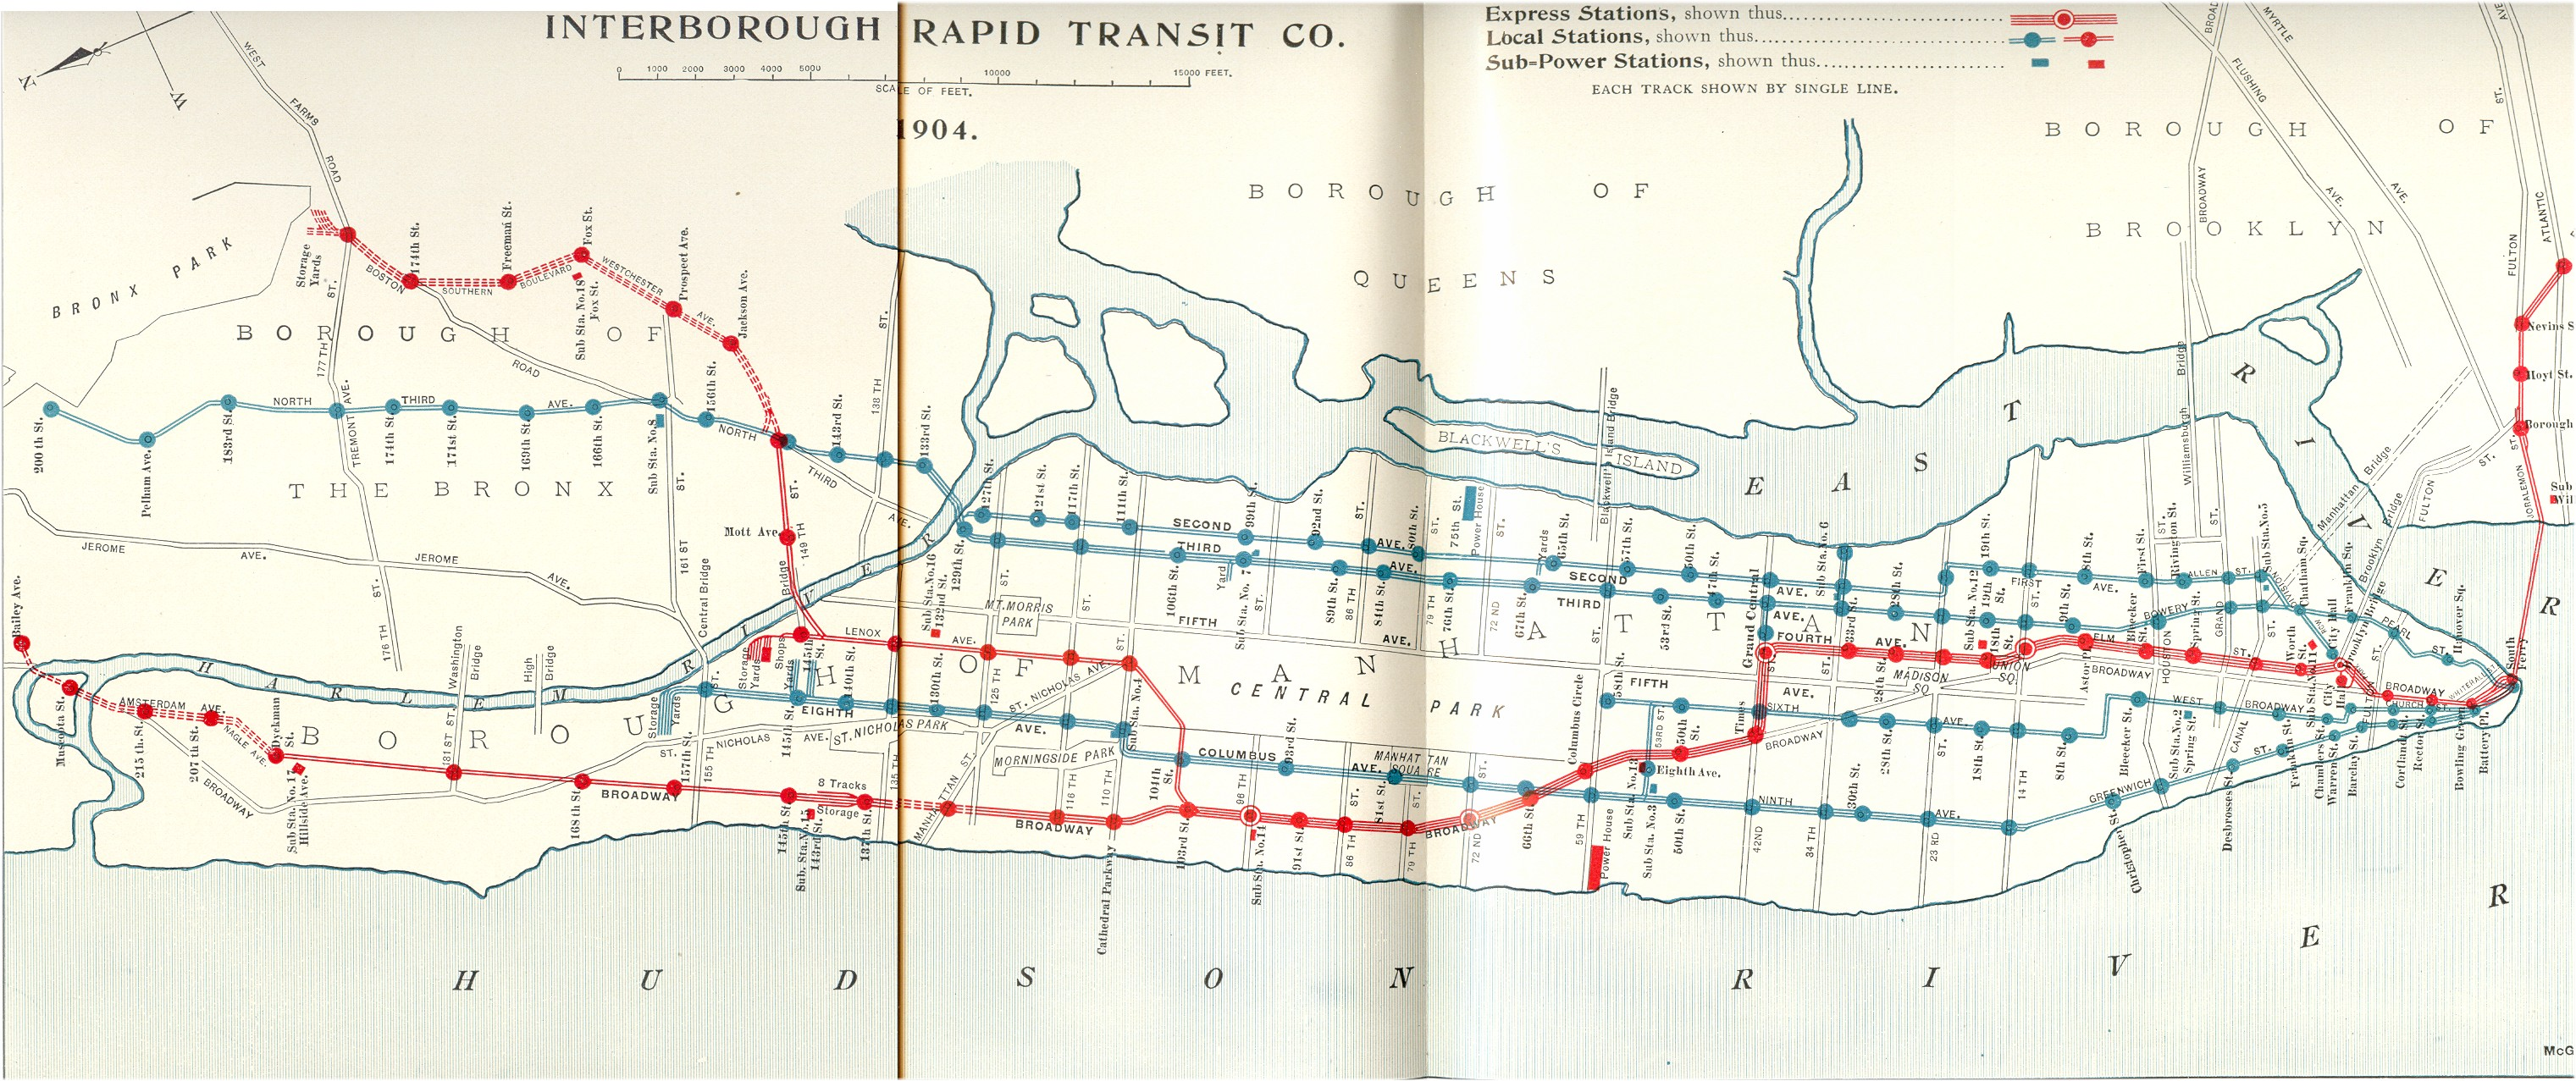 2 Ave Subway Map.Vintage Map Shows New York City S Irt Subway Lines In 1904 Viewing Nyc